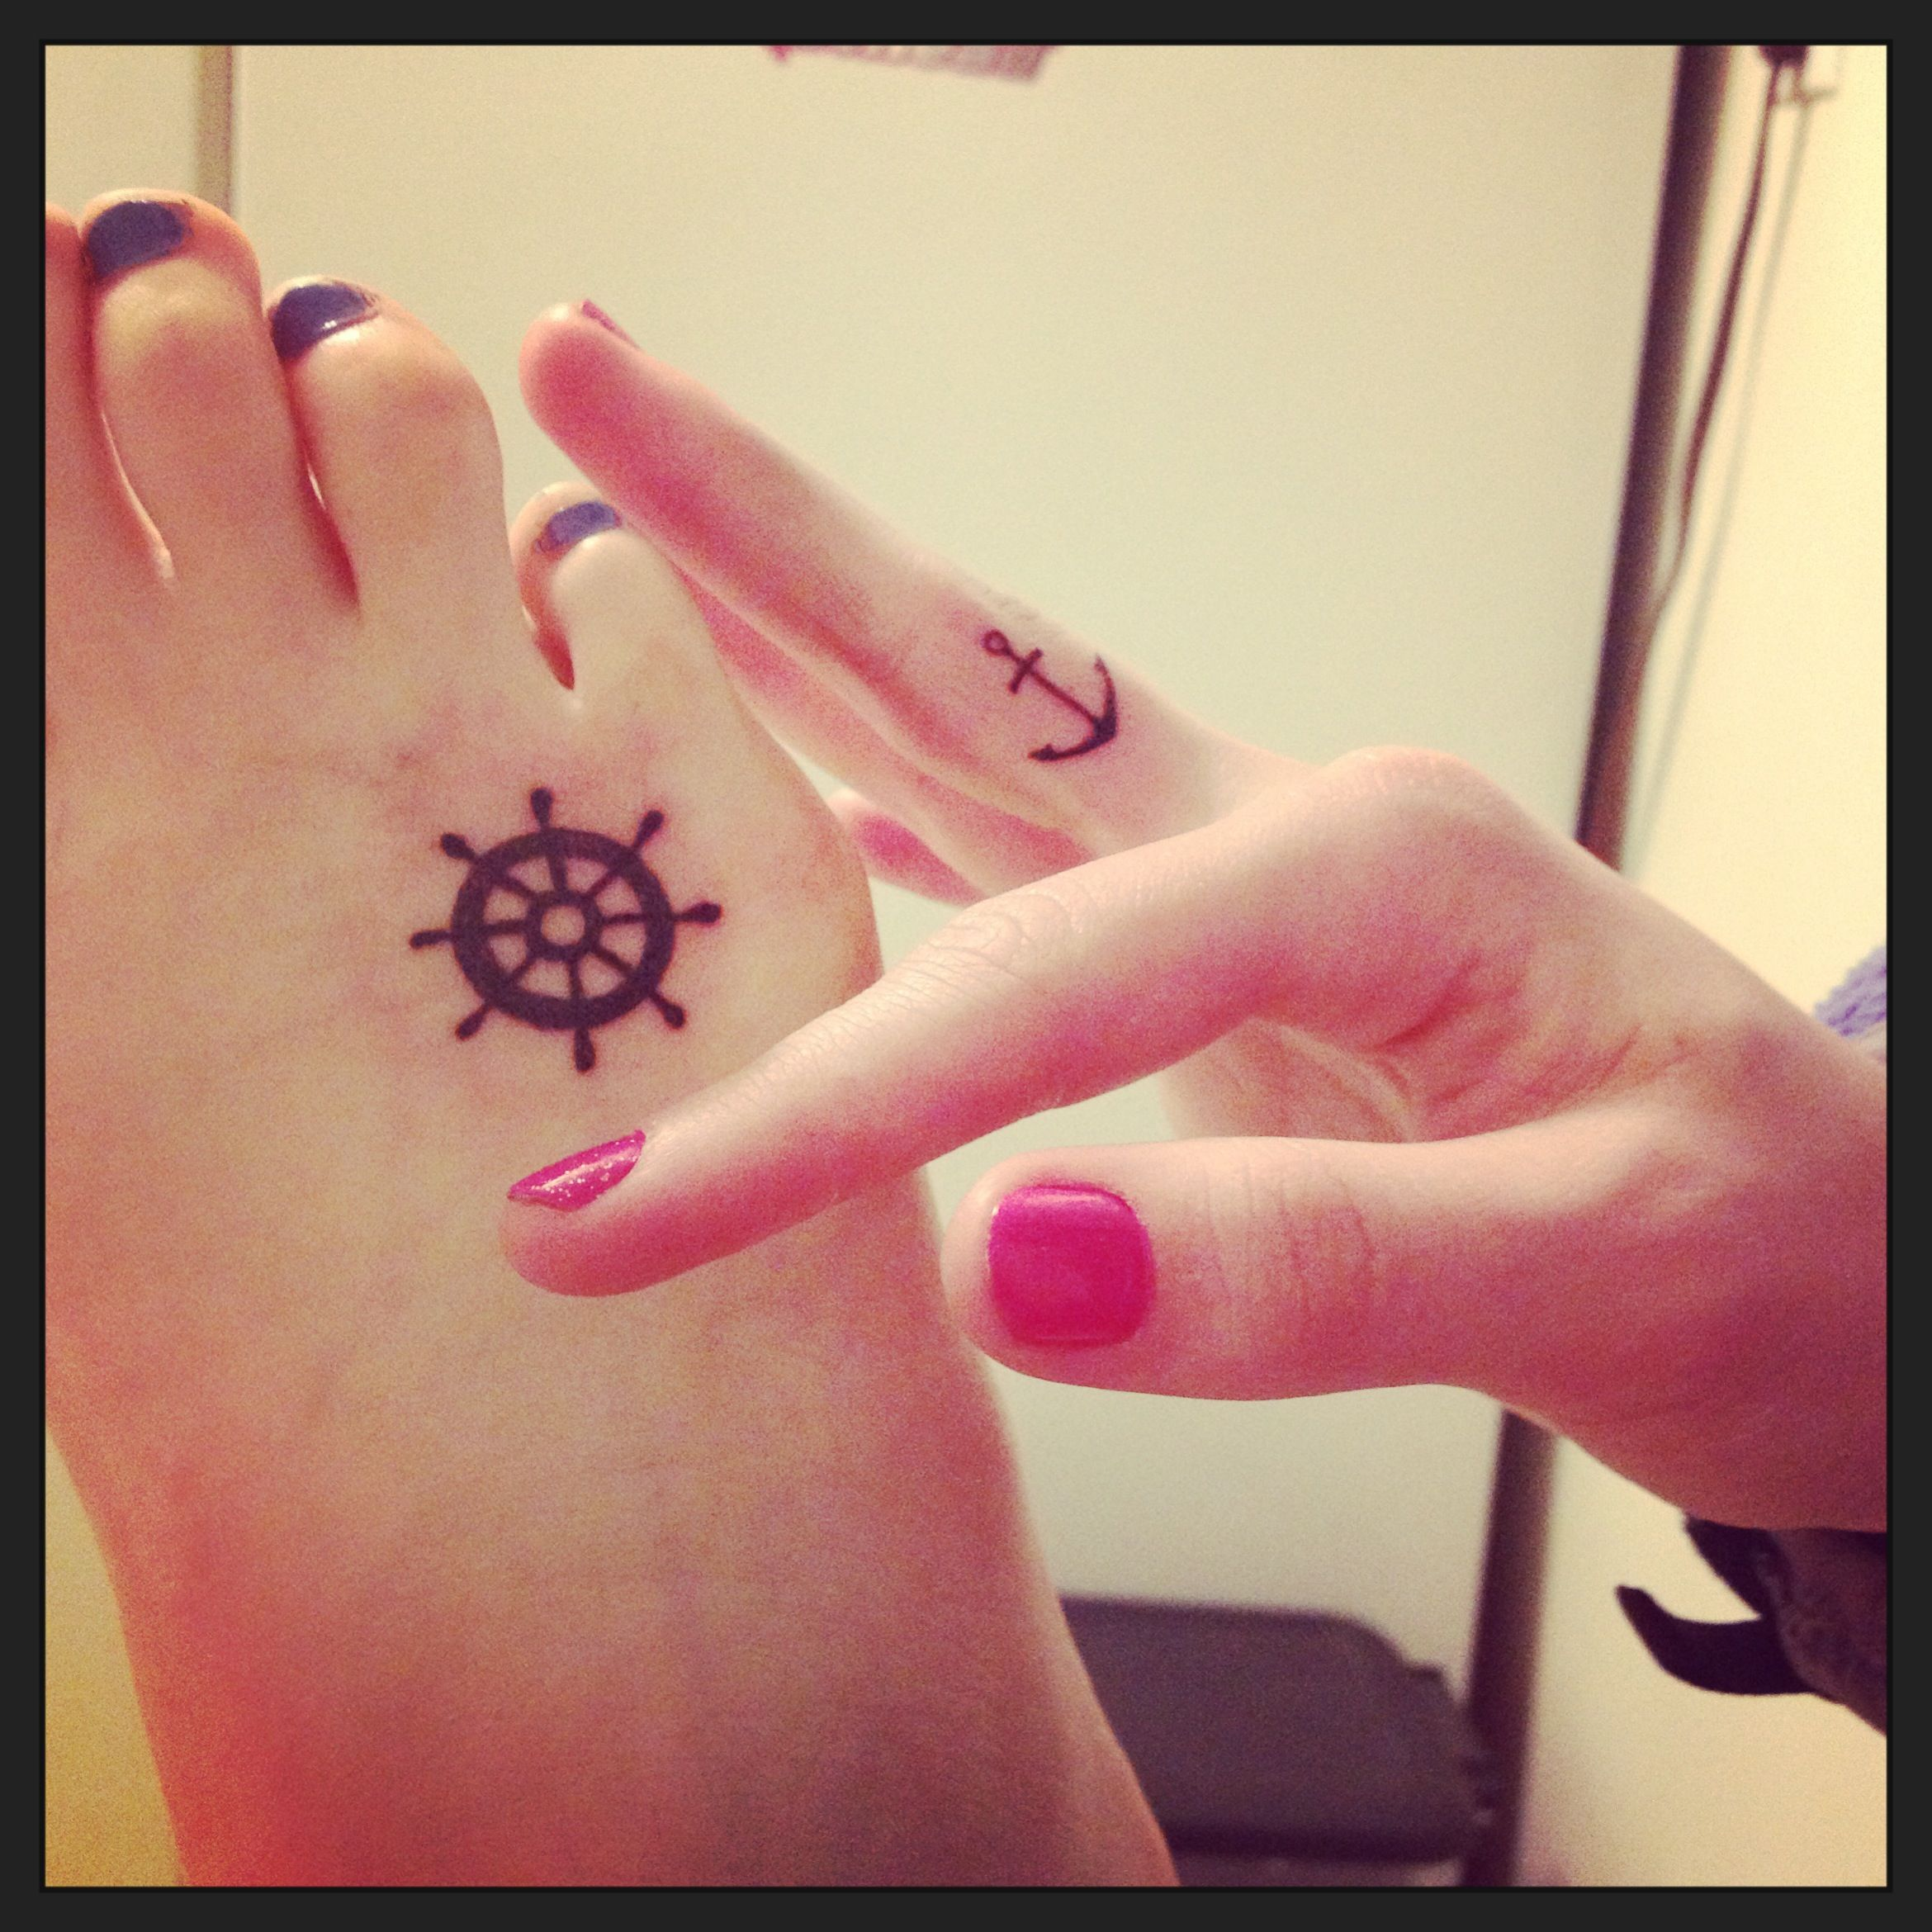 My Cousin Karly And I Got Friendship Tattoos Meaning We Will